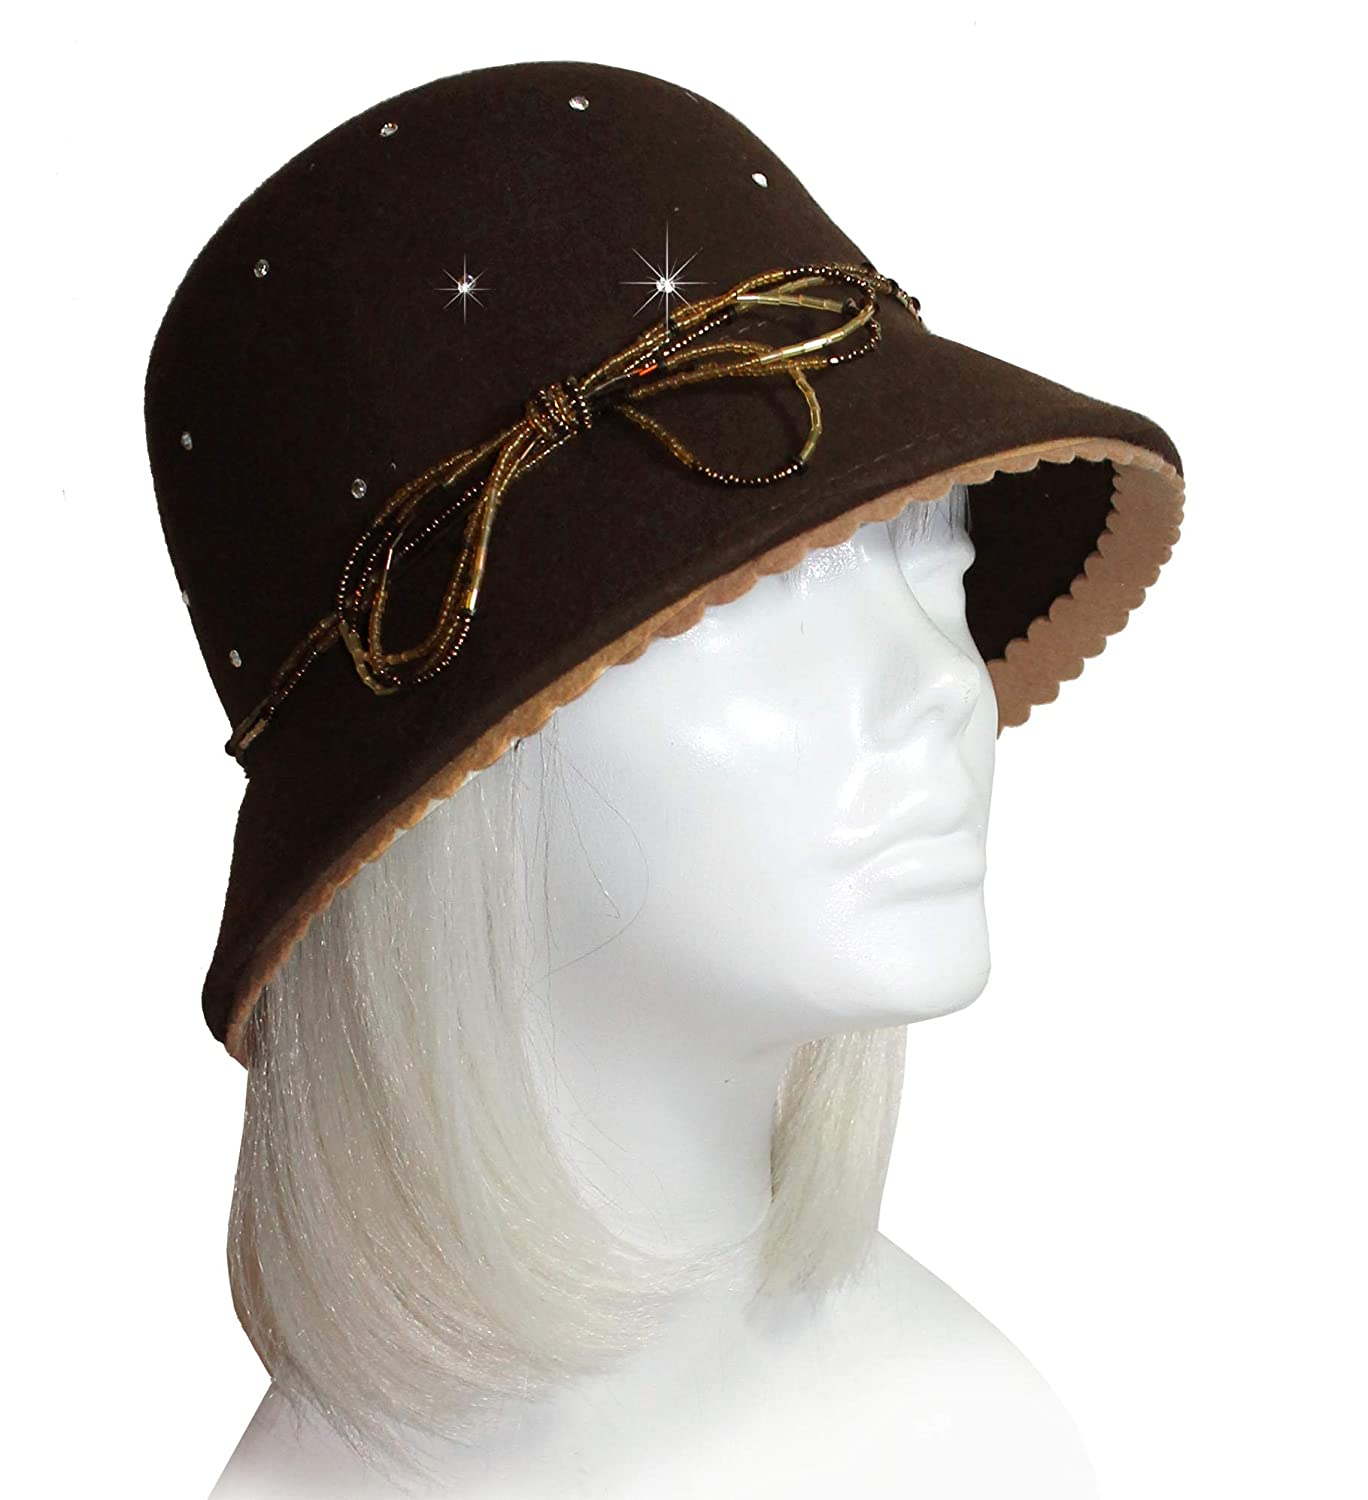 abfd1347ccd7a Mr. Song Millilnery Cashmere-Soft Felt Bell Cloche Hat W Rhinestones  47800RS at Amazon Women s Clothing store